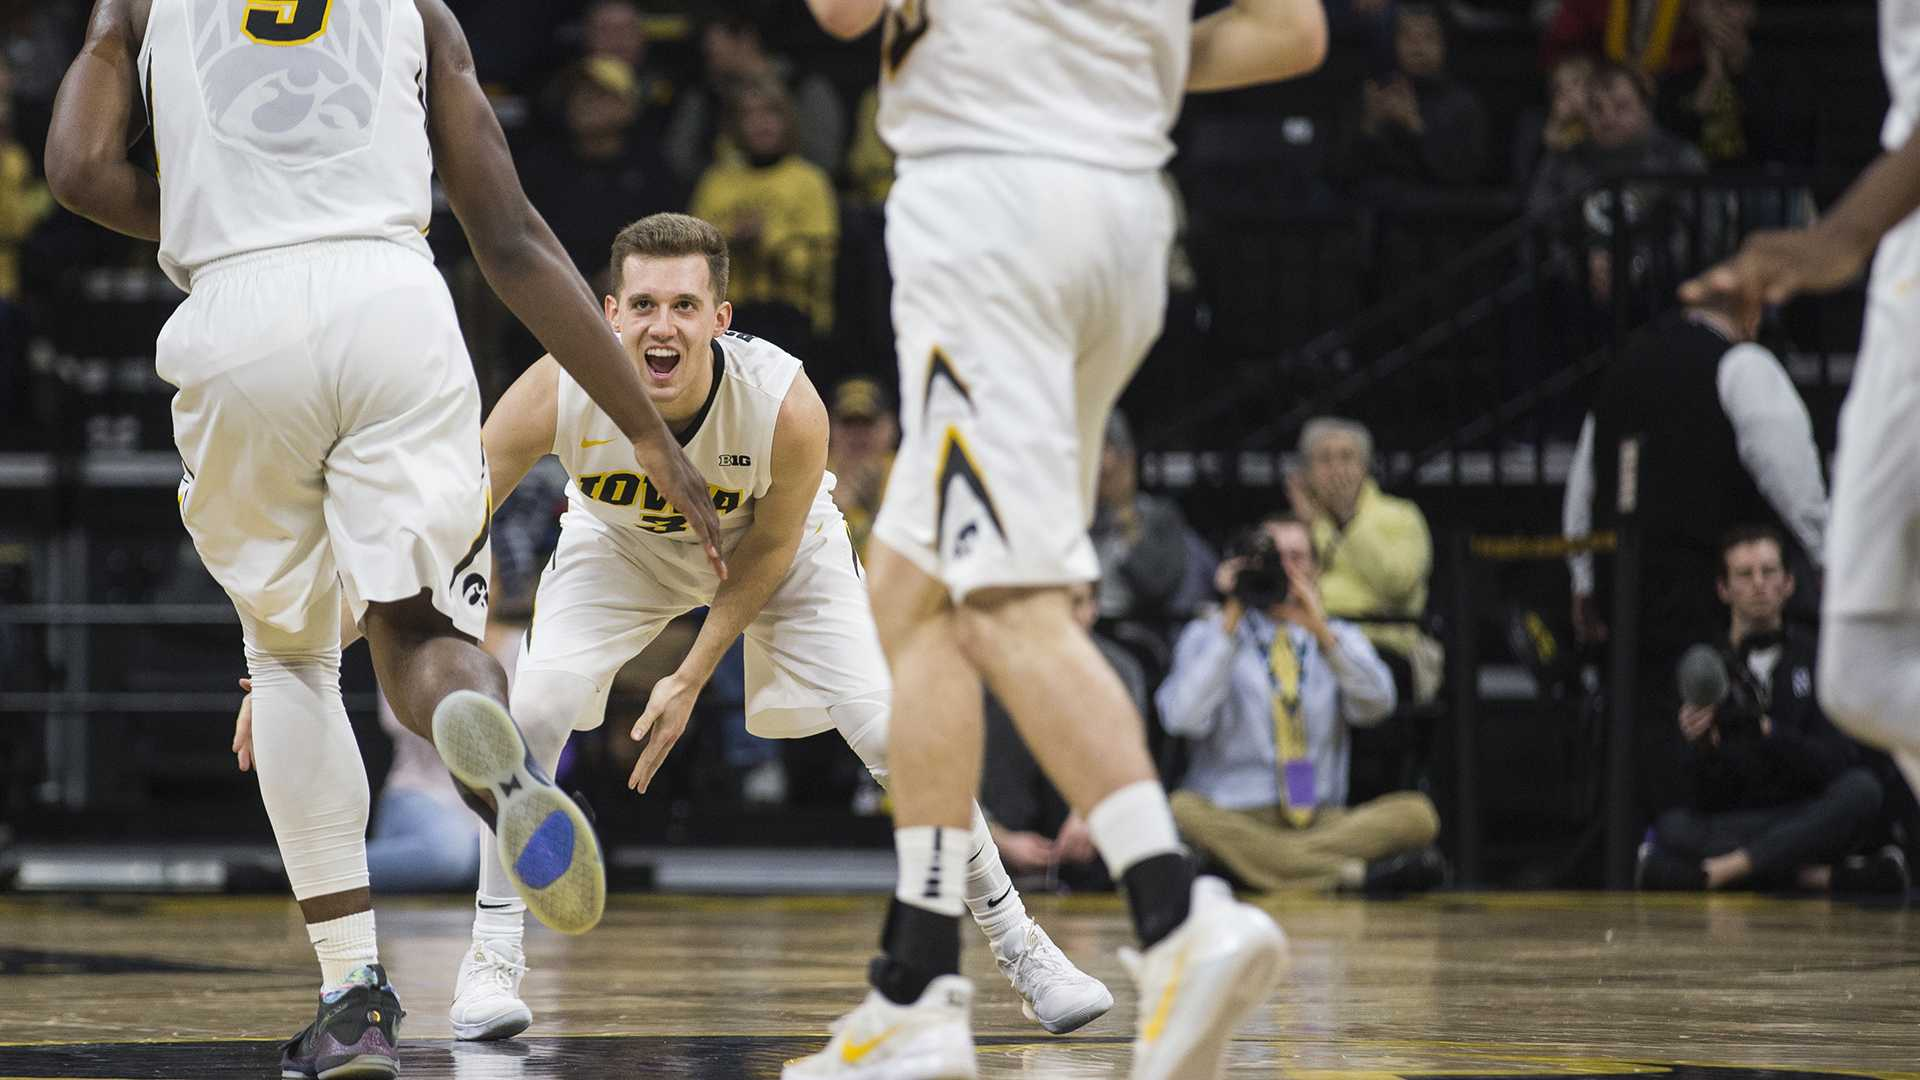 Iowa senior Jordan Bohannon (3) celebrates a made shot during the first half of the Senior Day men's basketball game between Iowa and Northwestern at Carver-Hawkeye Arena on Sunday, Feb. 25, 2018. The Hawkeyes defeated the Wildcats 77-70. (Ben Allan Smith/The Daily Iowan)